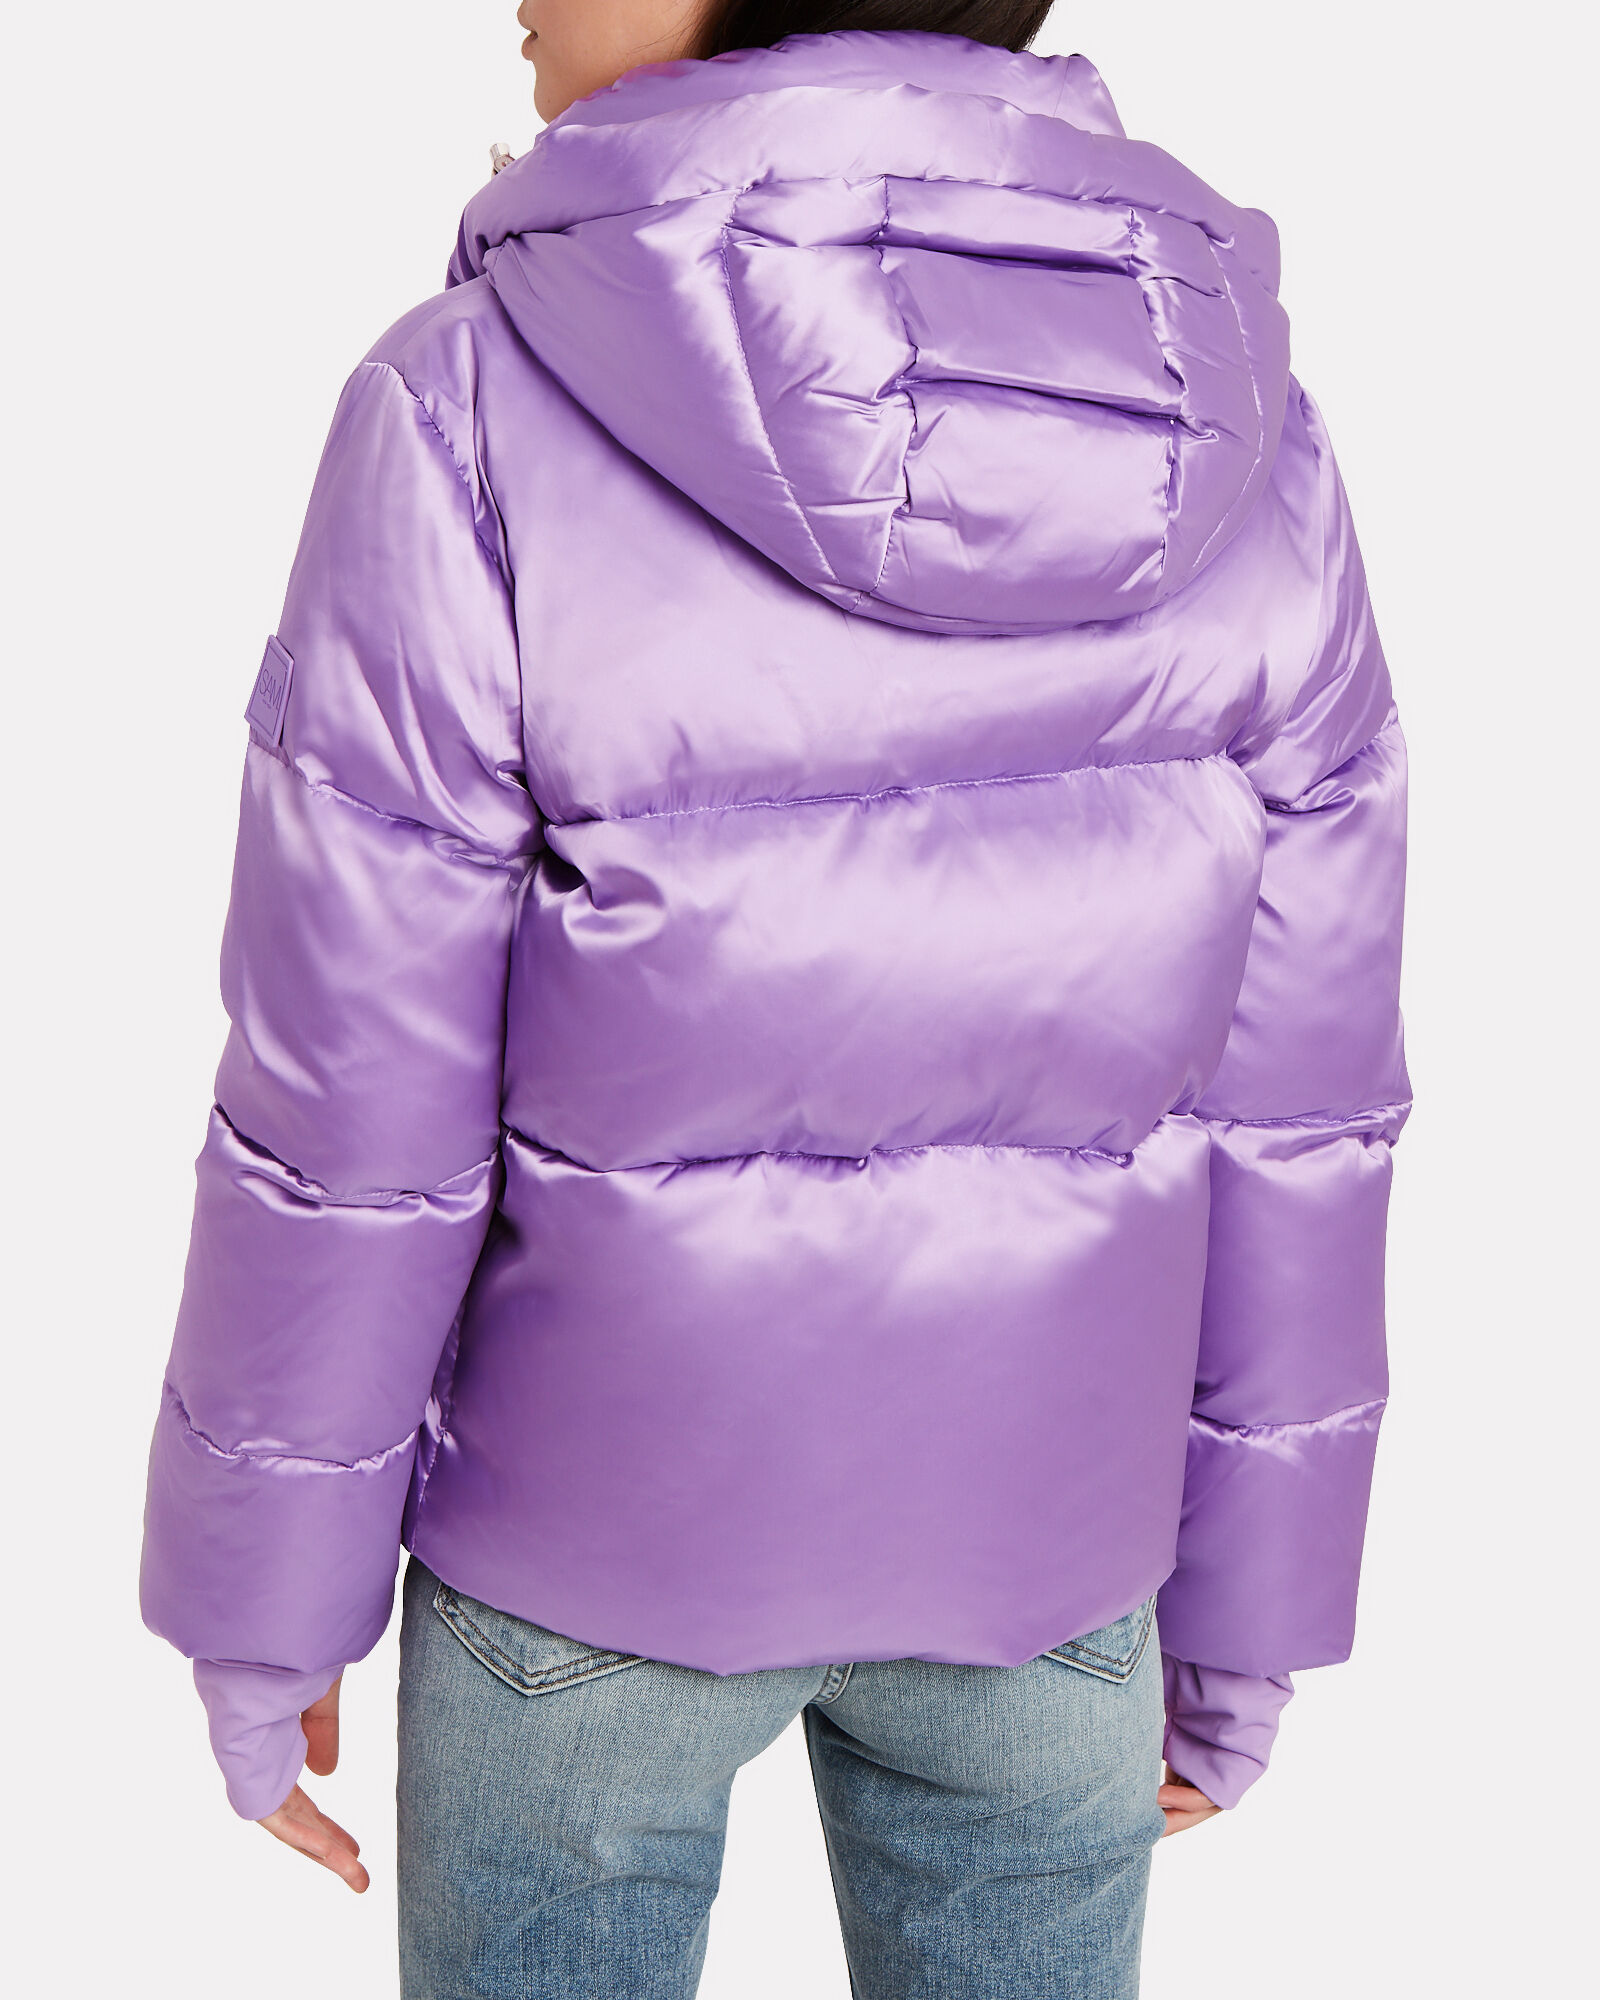 Sydney Satin Down Puffer Jacket, PURPLE-LT, hi-res